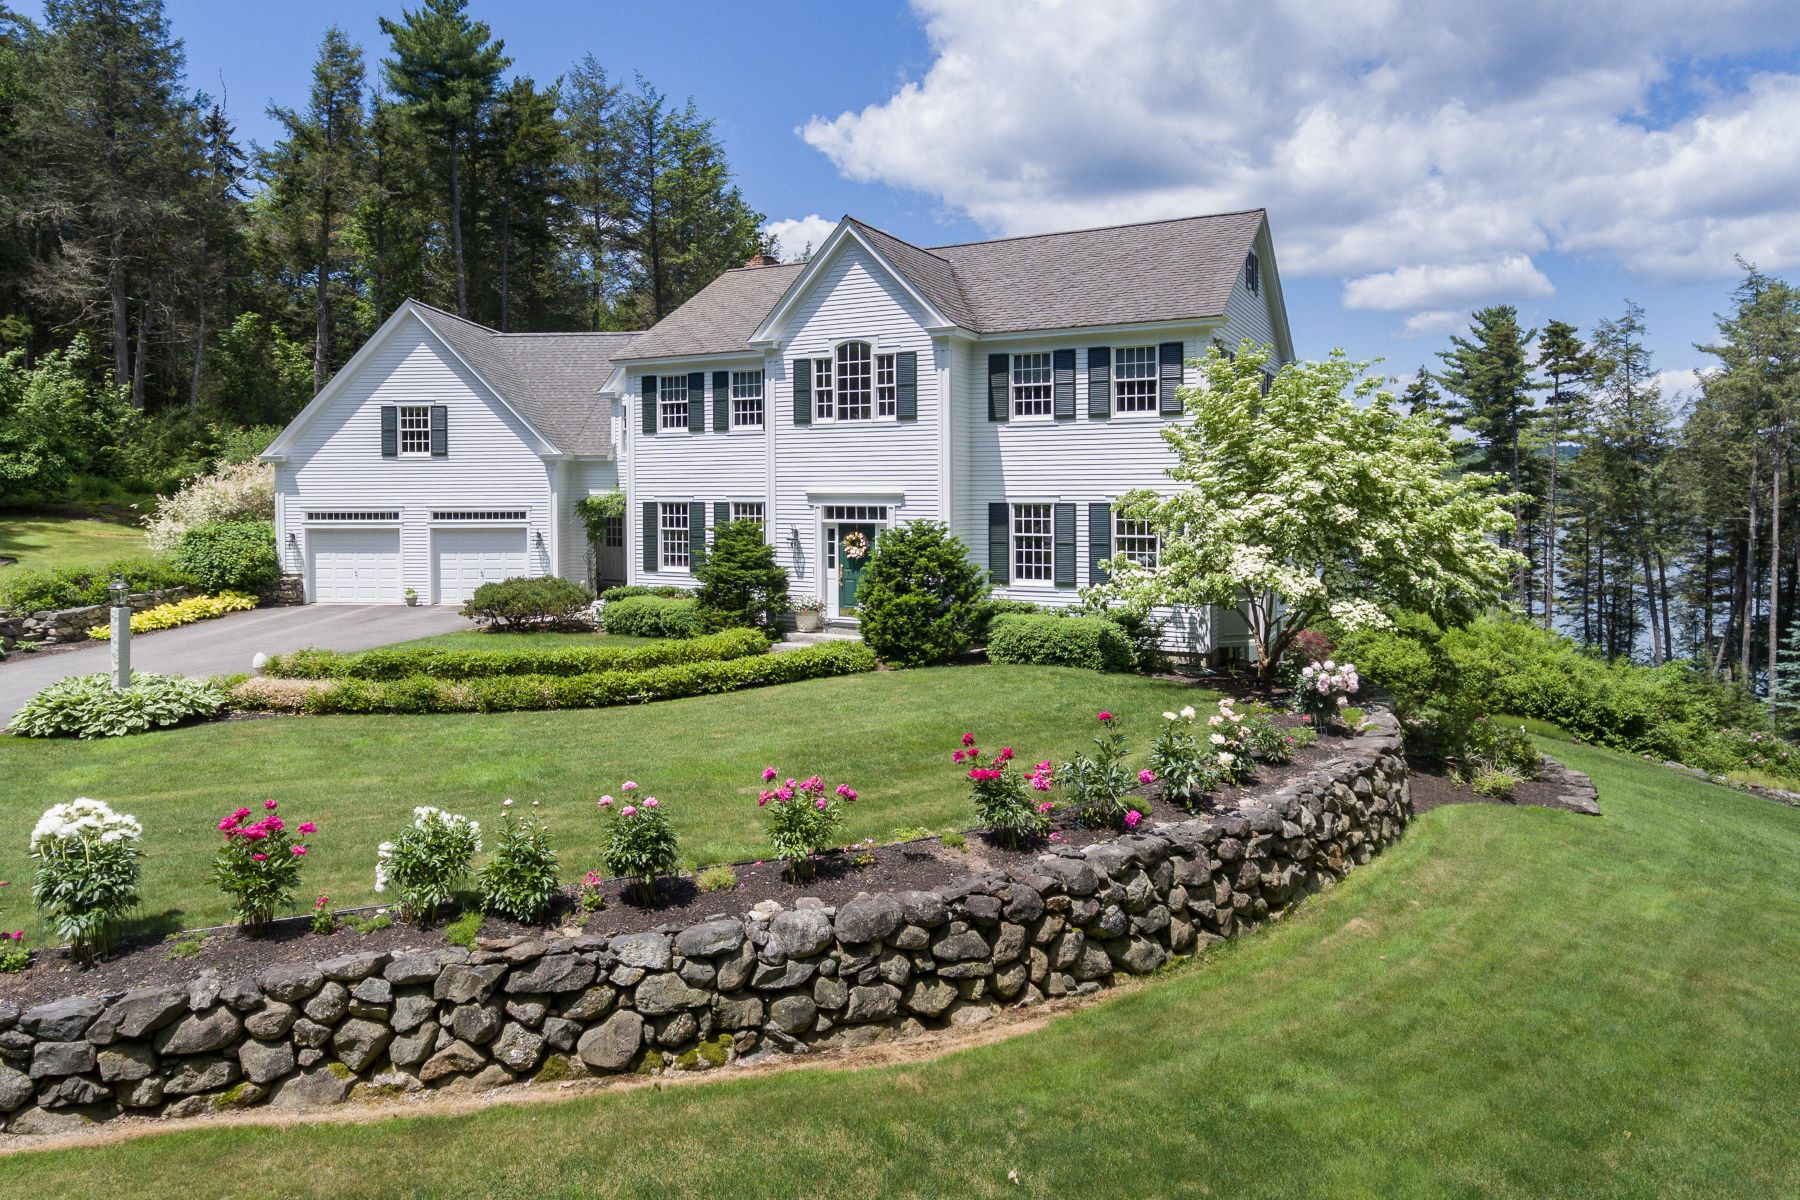 Single Family Homes for Sale at 33 Gaul Drive South Bristol, Maine 04573 United States